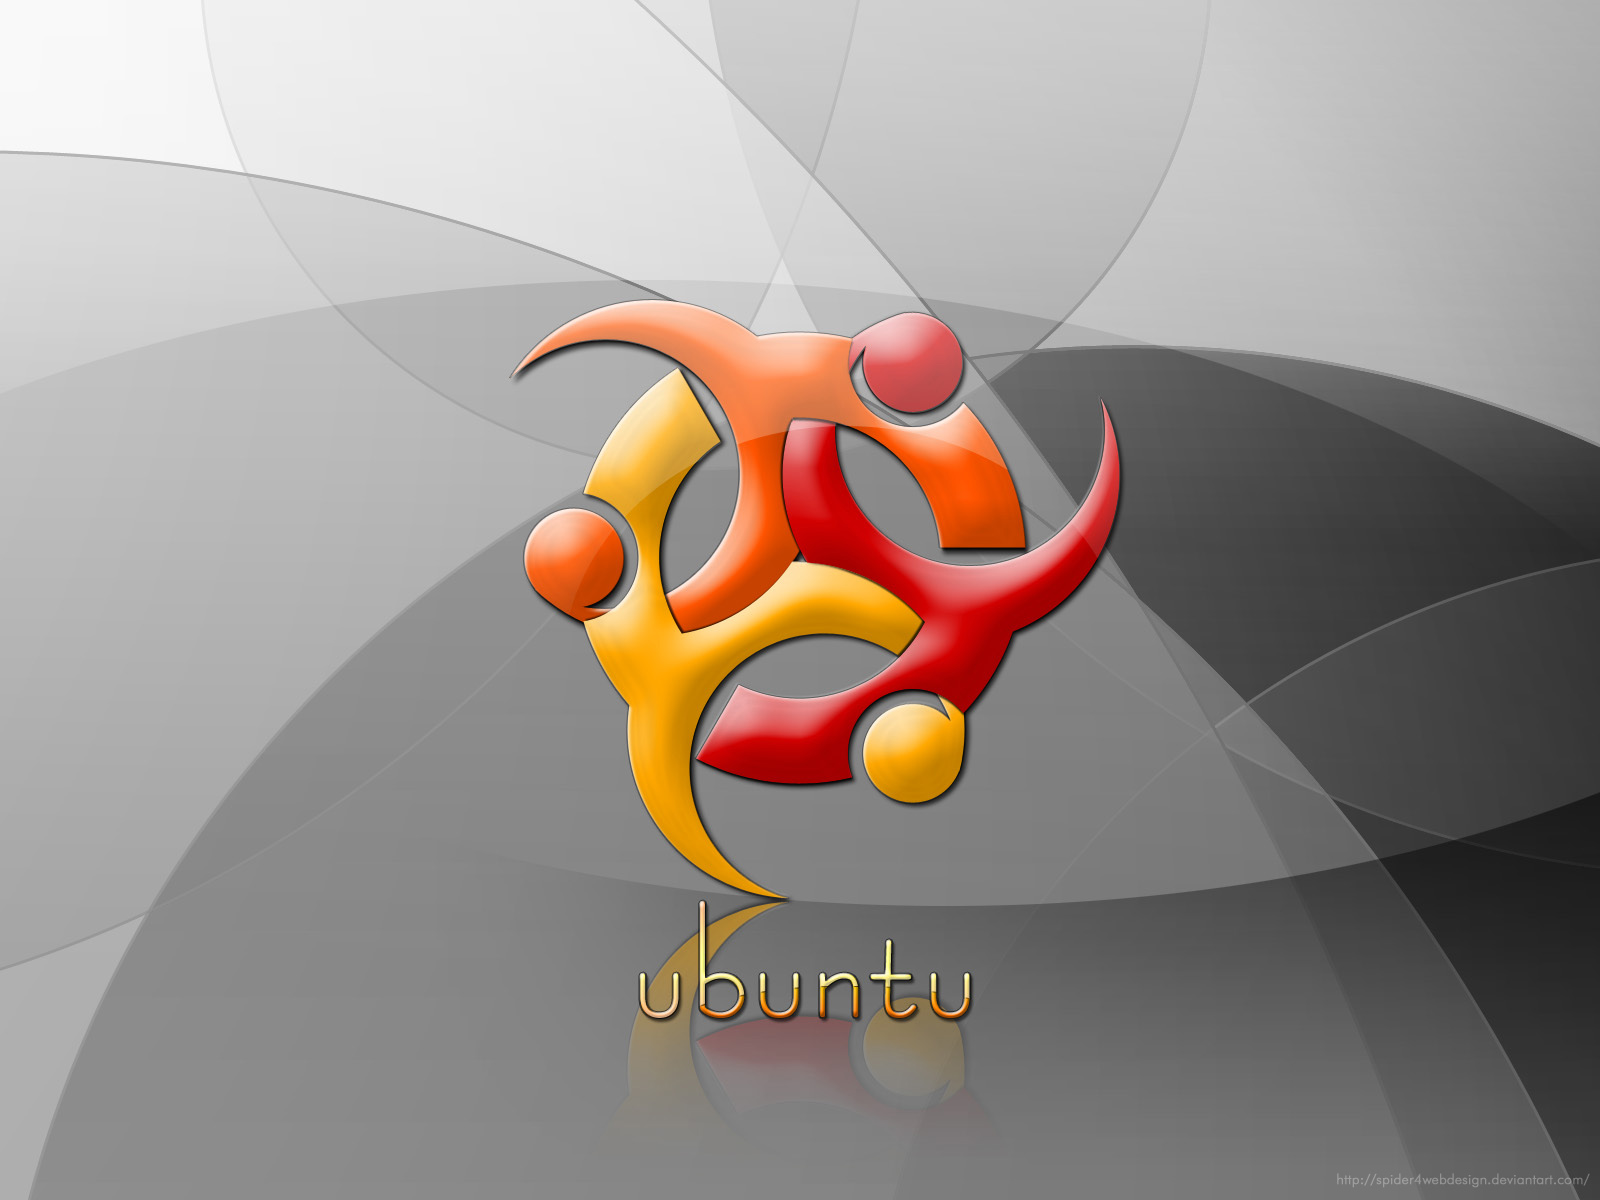 Ubuntu 3D Logos Wallpapers HD | Top HD Wallpapers